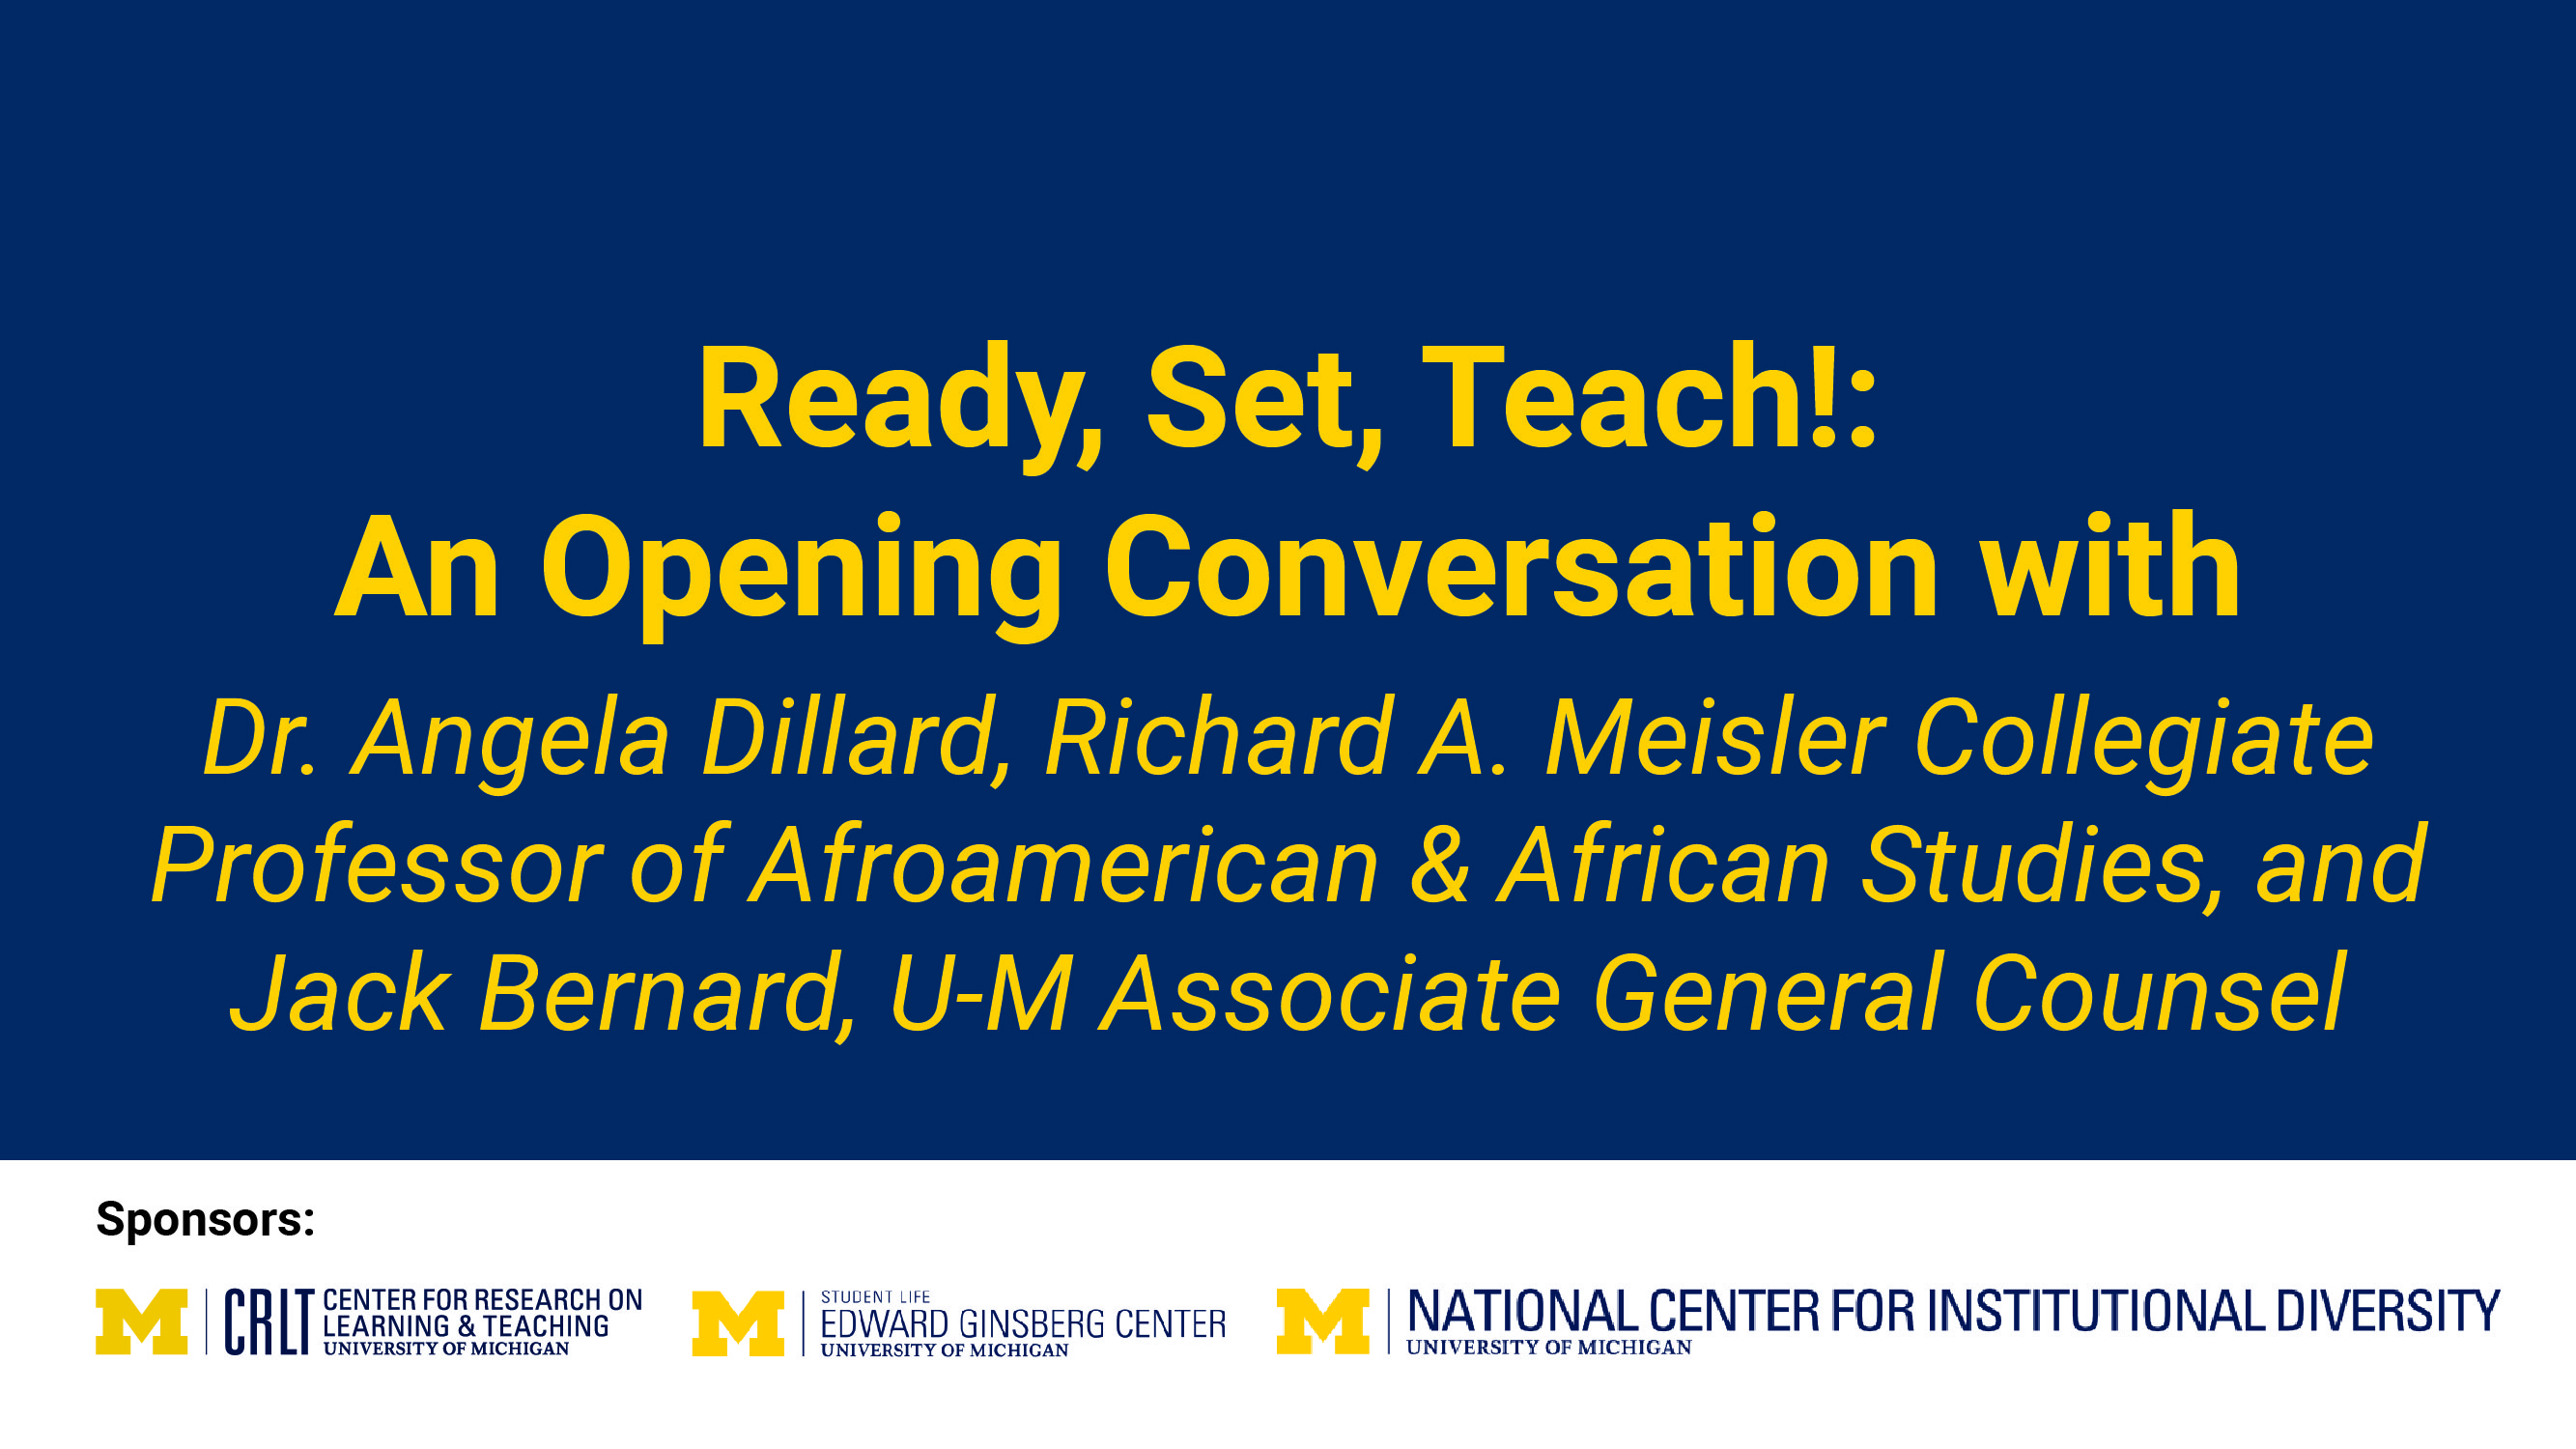 Ready, Set, Teach: An Opening Conversation video title